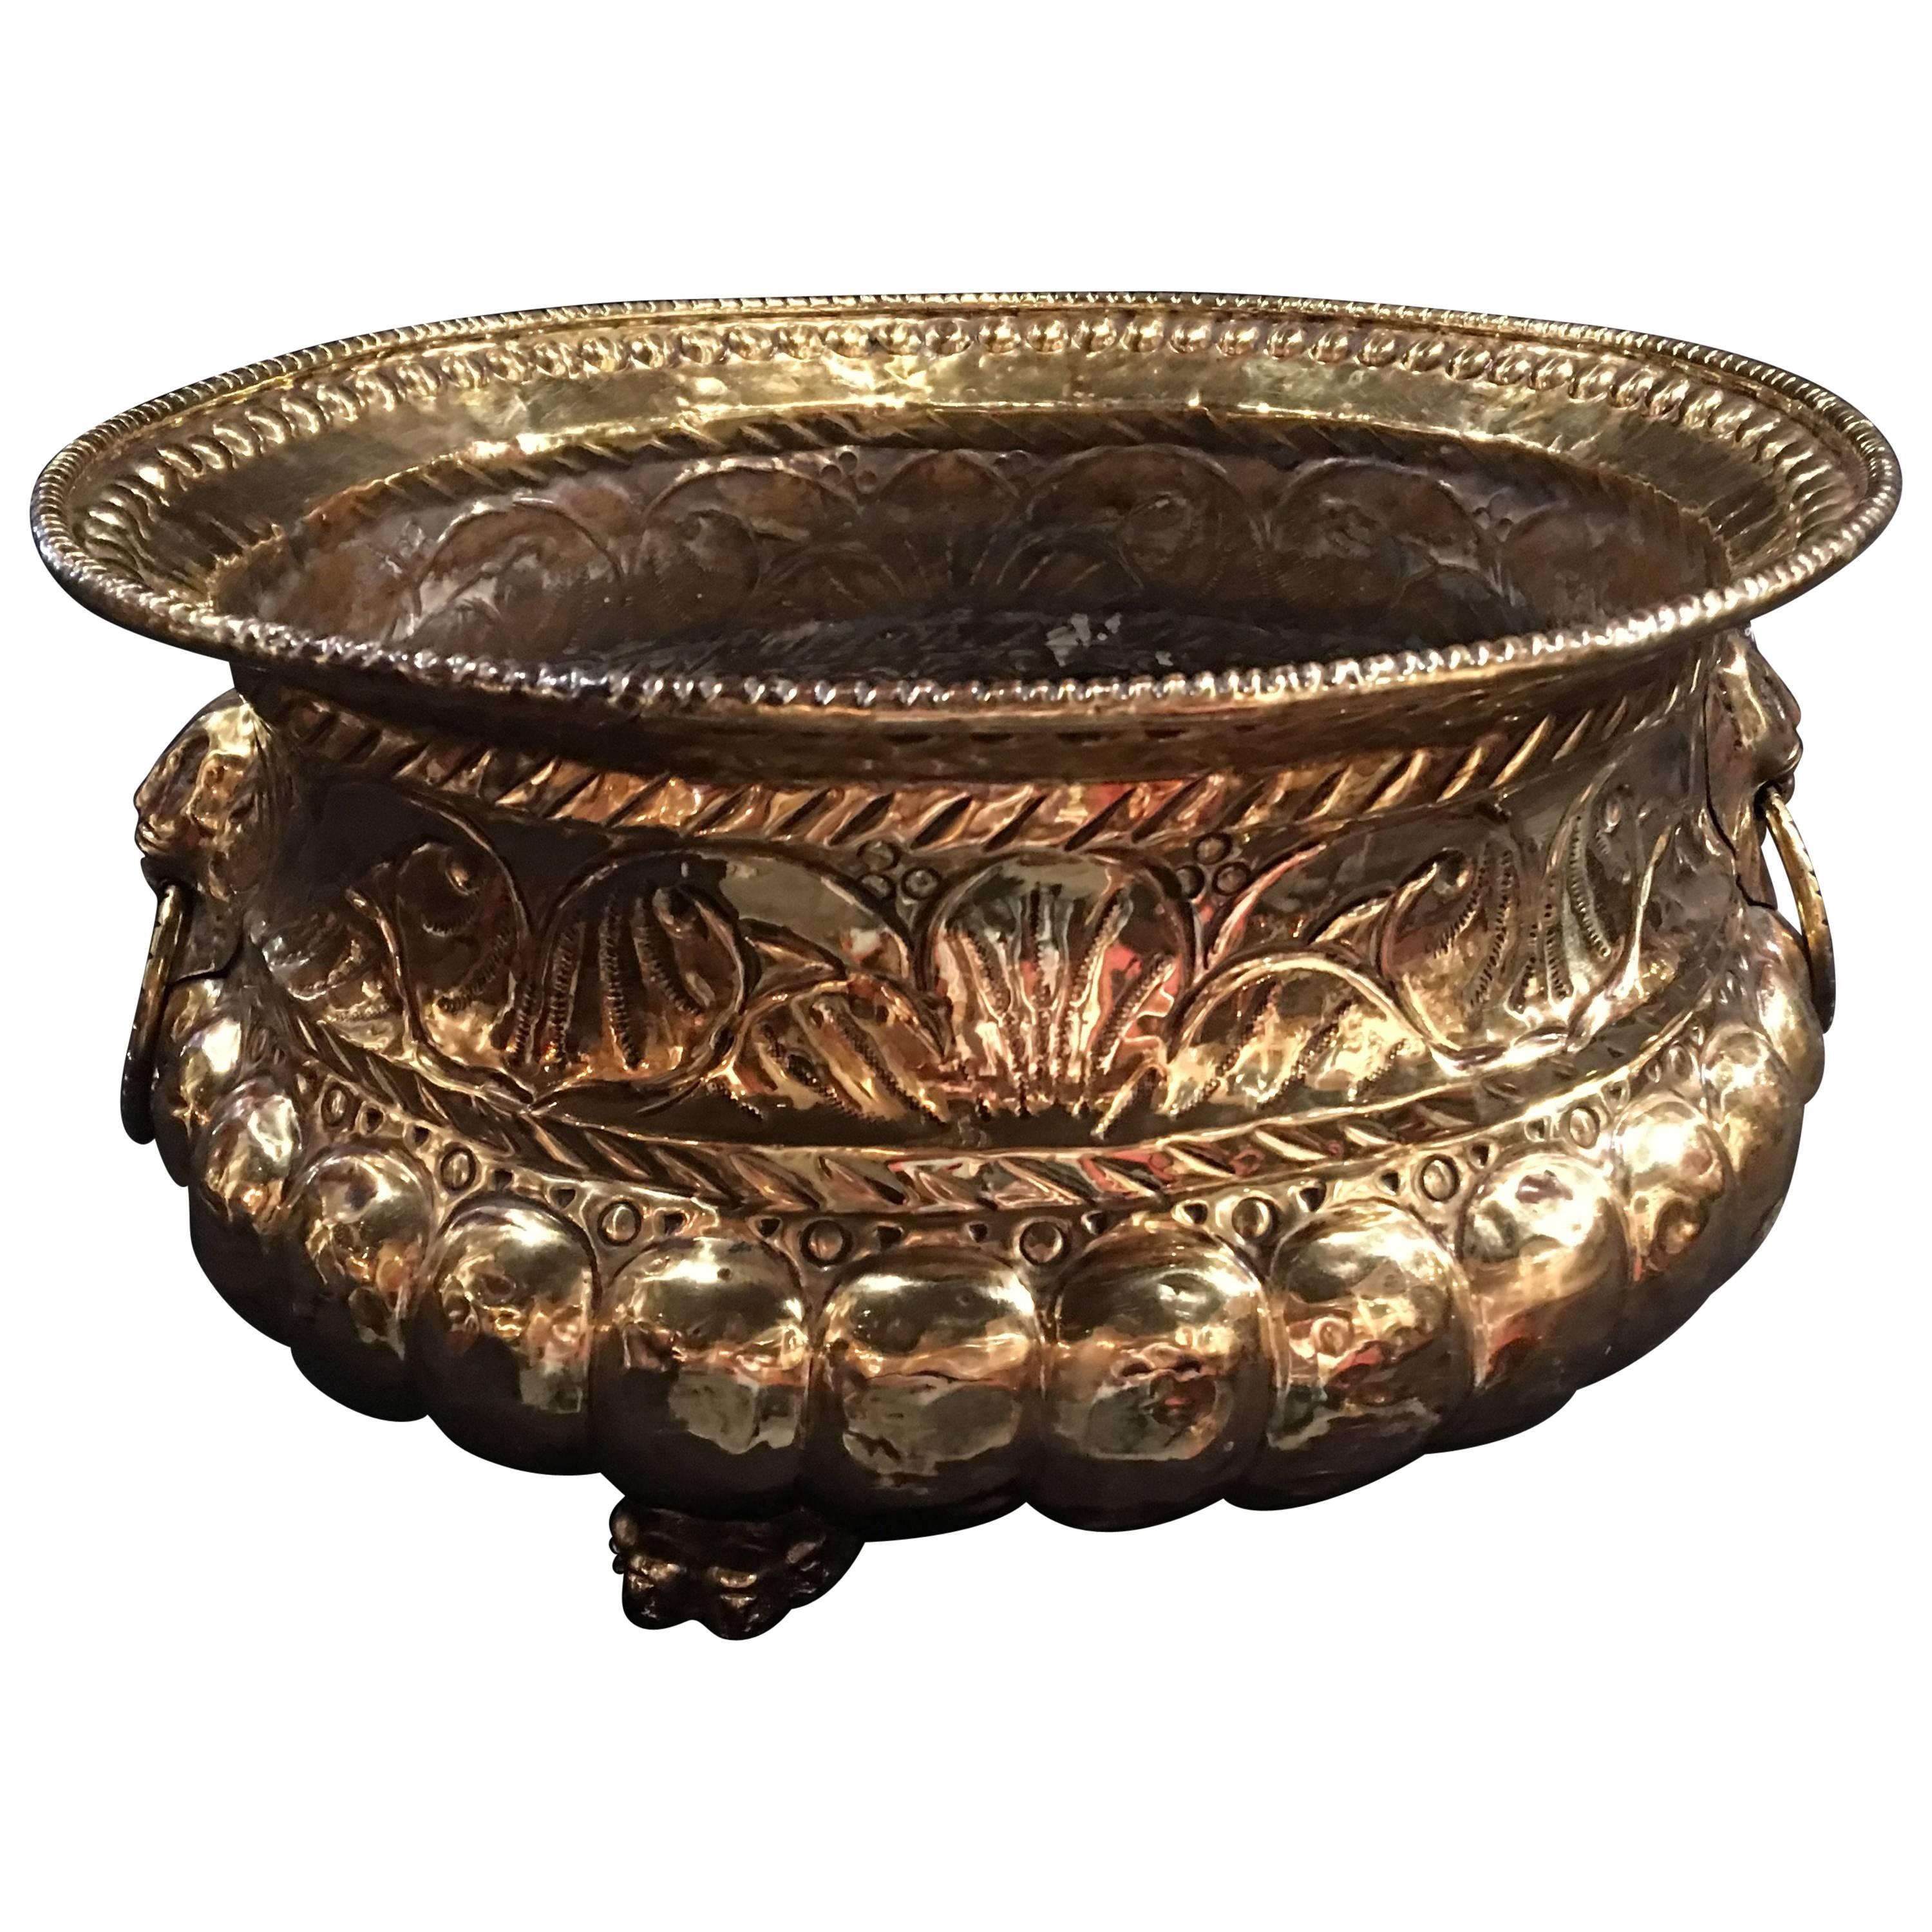 French Polished Brass Round Jardiniere or Planter on Feet, 19th Century